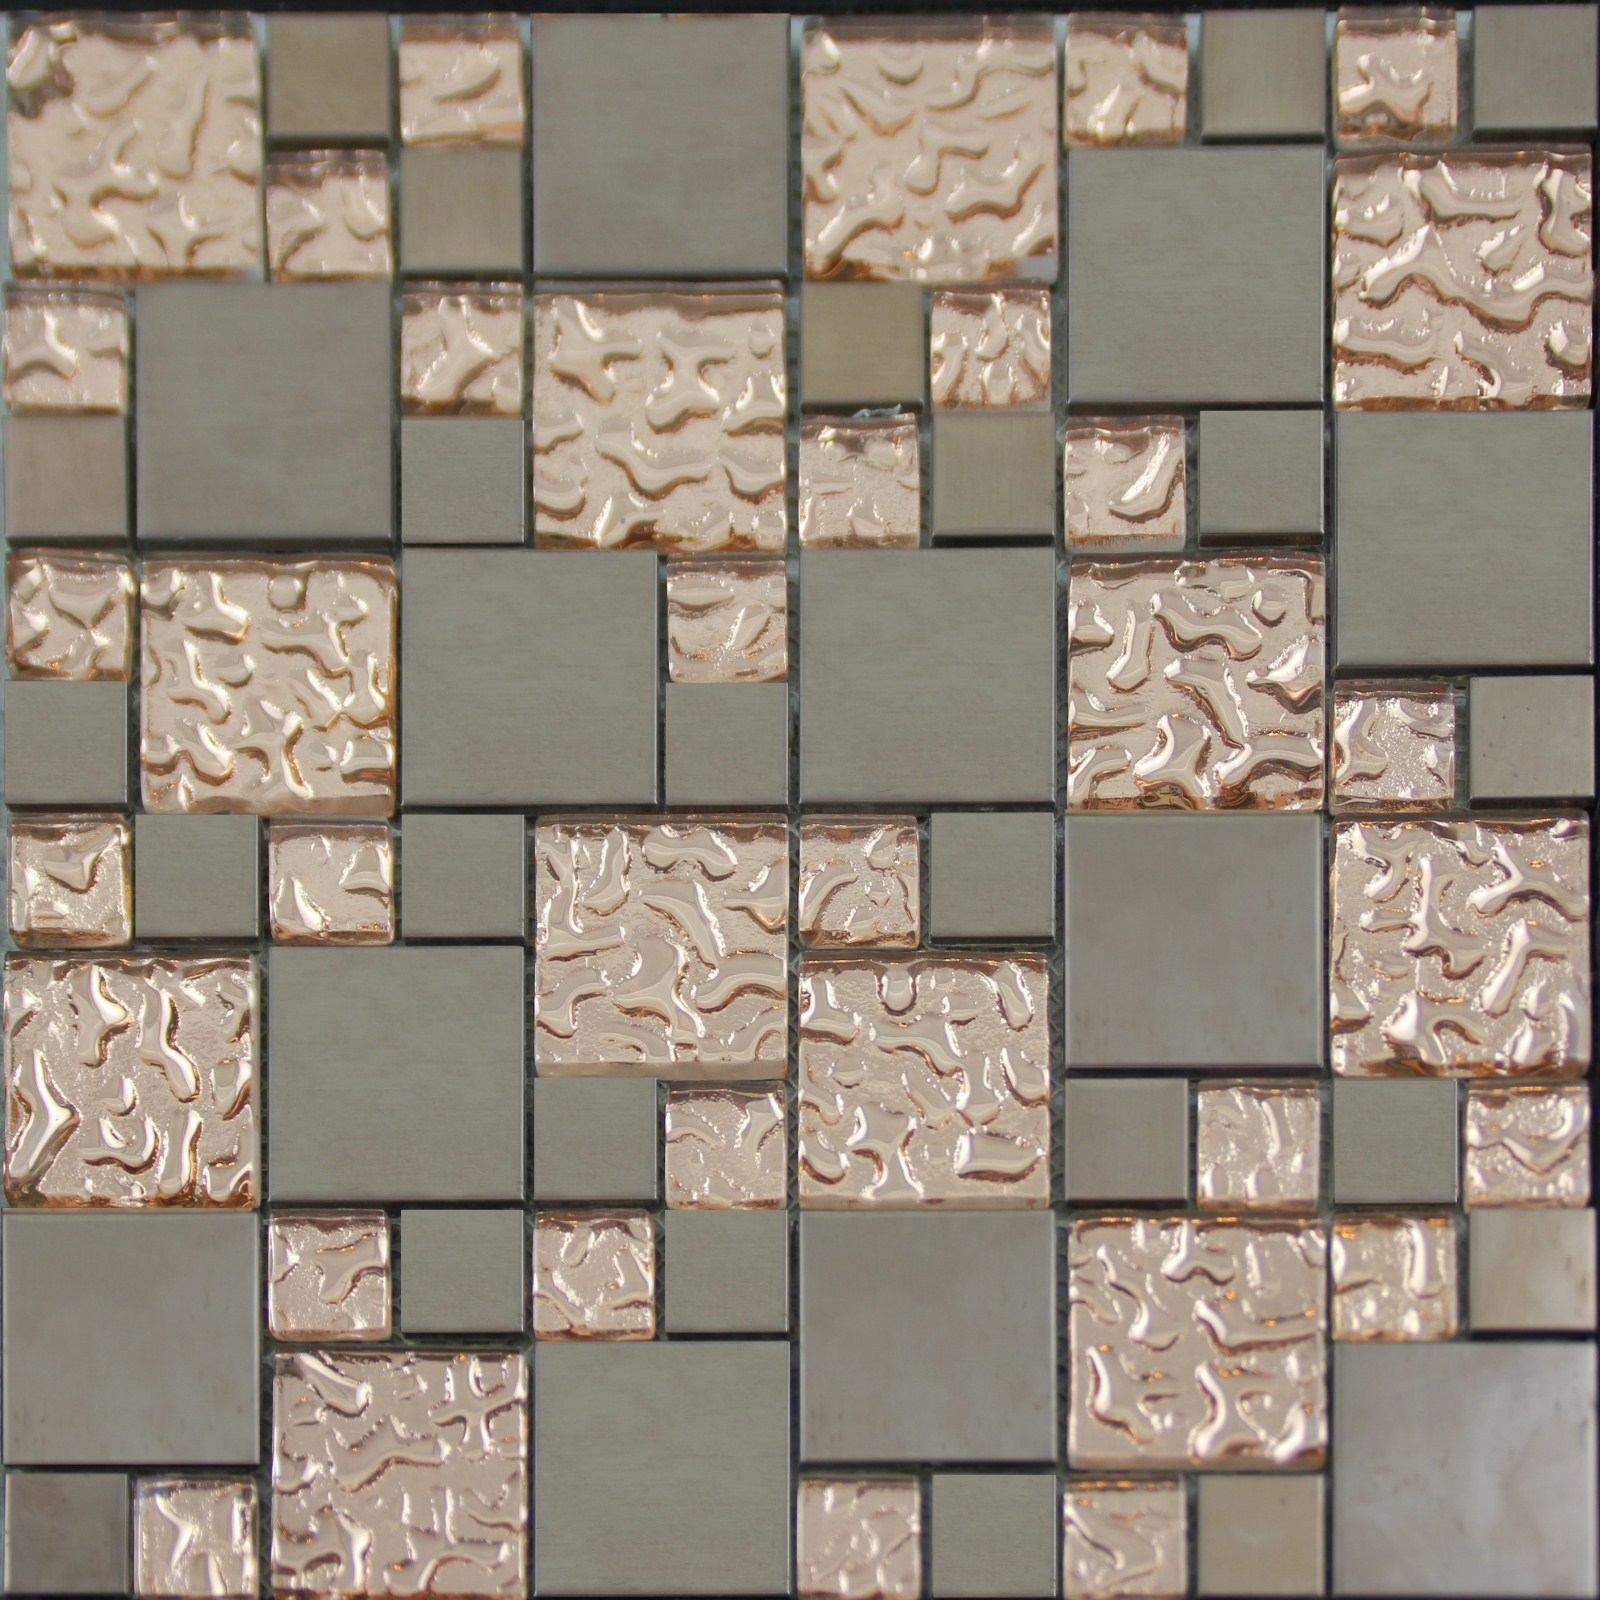 Copper glass and porcelain square mosaic tile designs plated ceramic wall tiles wall kitchen Design kitchen backsplash glass tiles